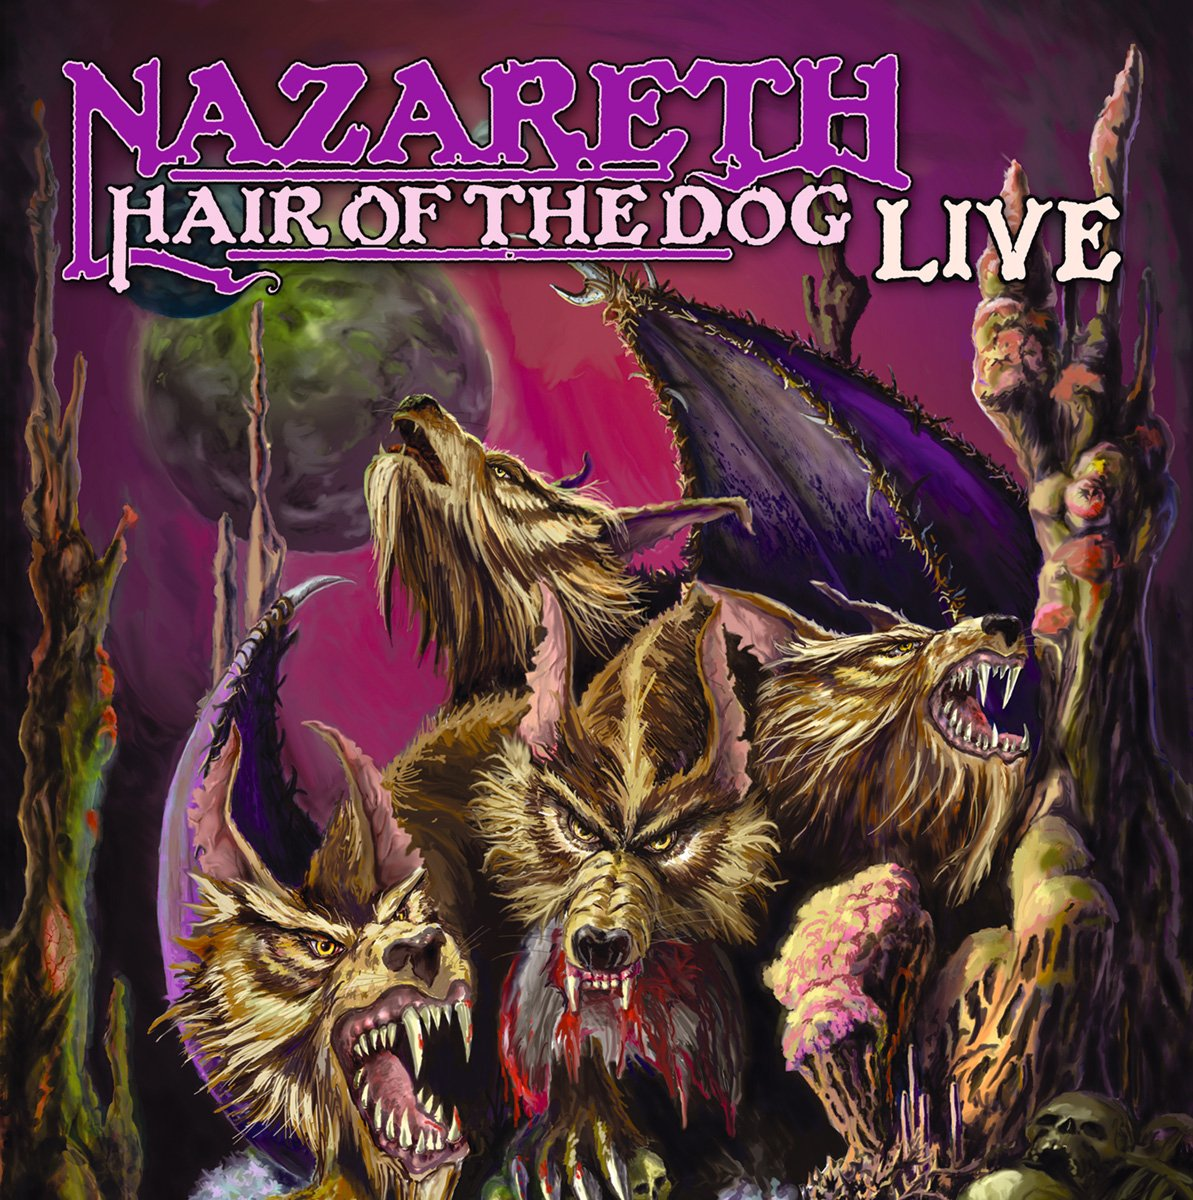 Hair of the Dog Live [Vinyl] by zyx/gcr